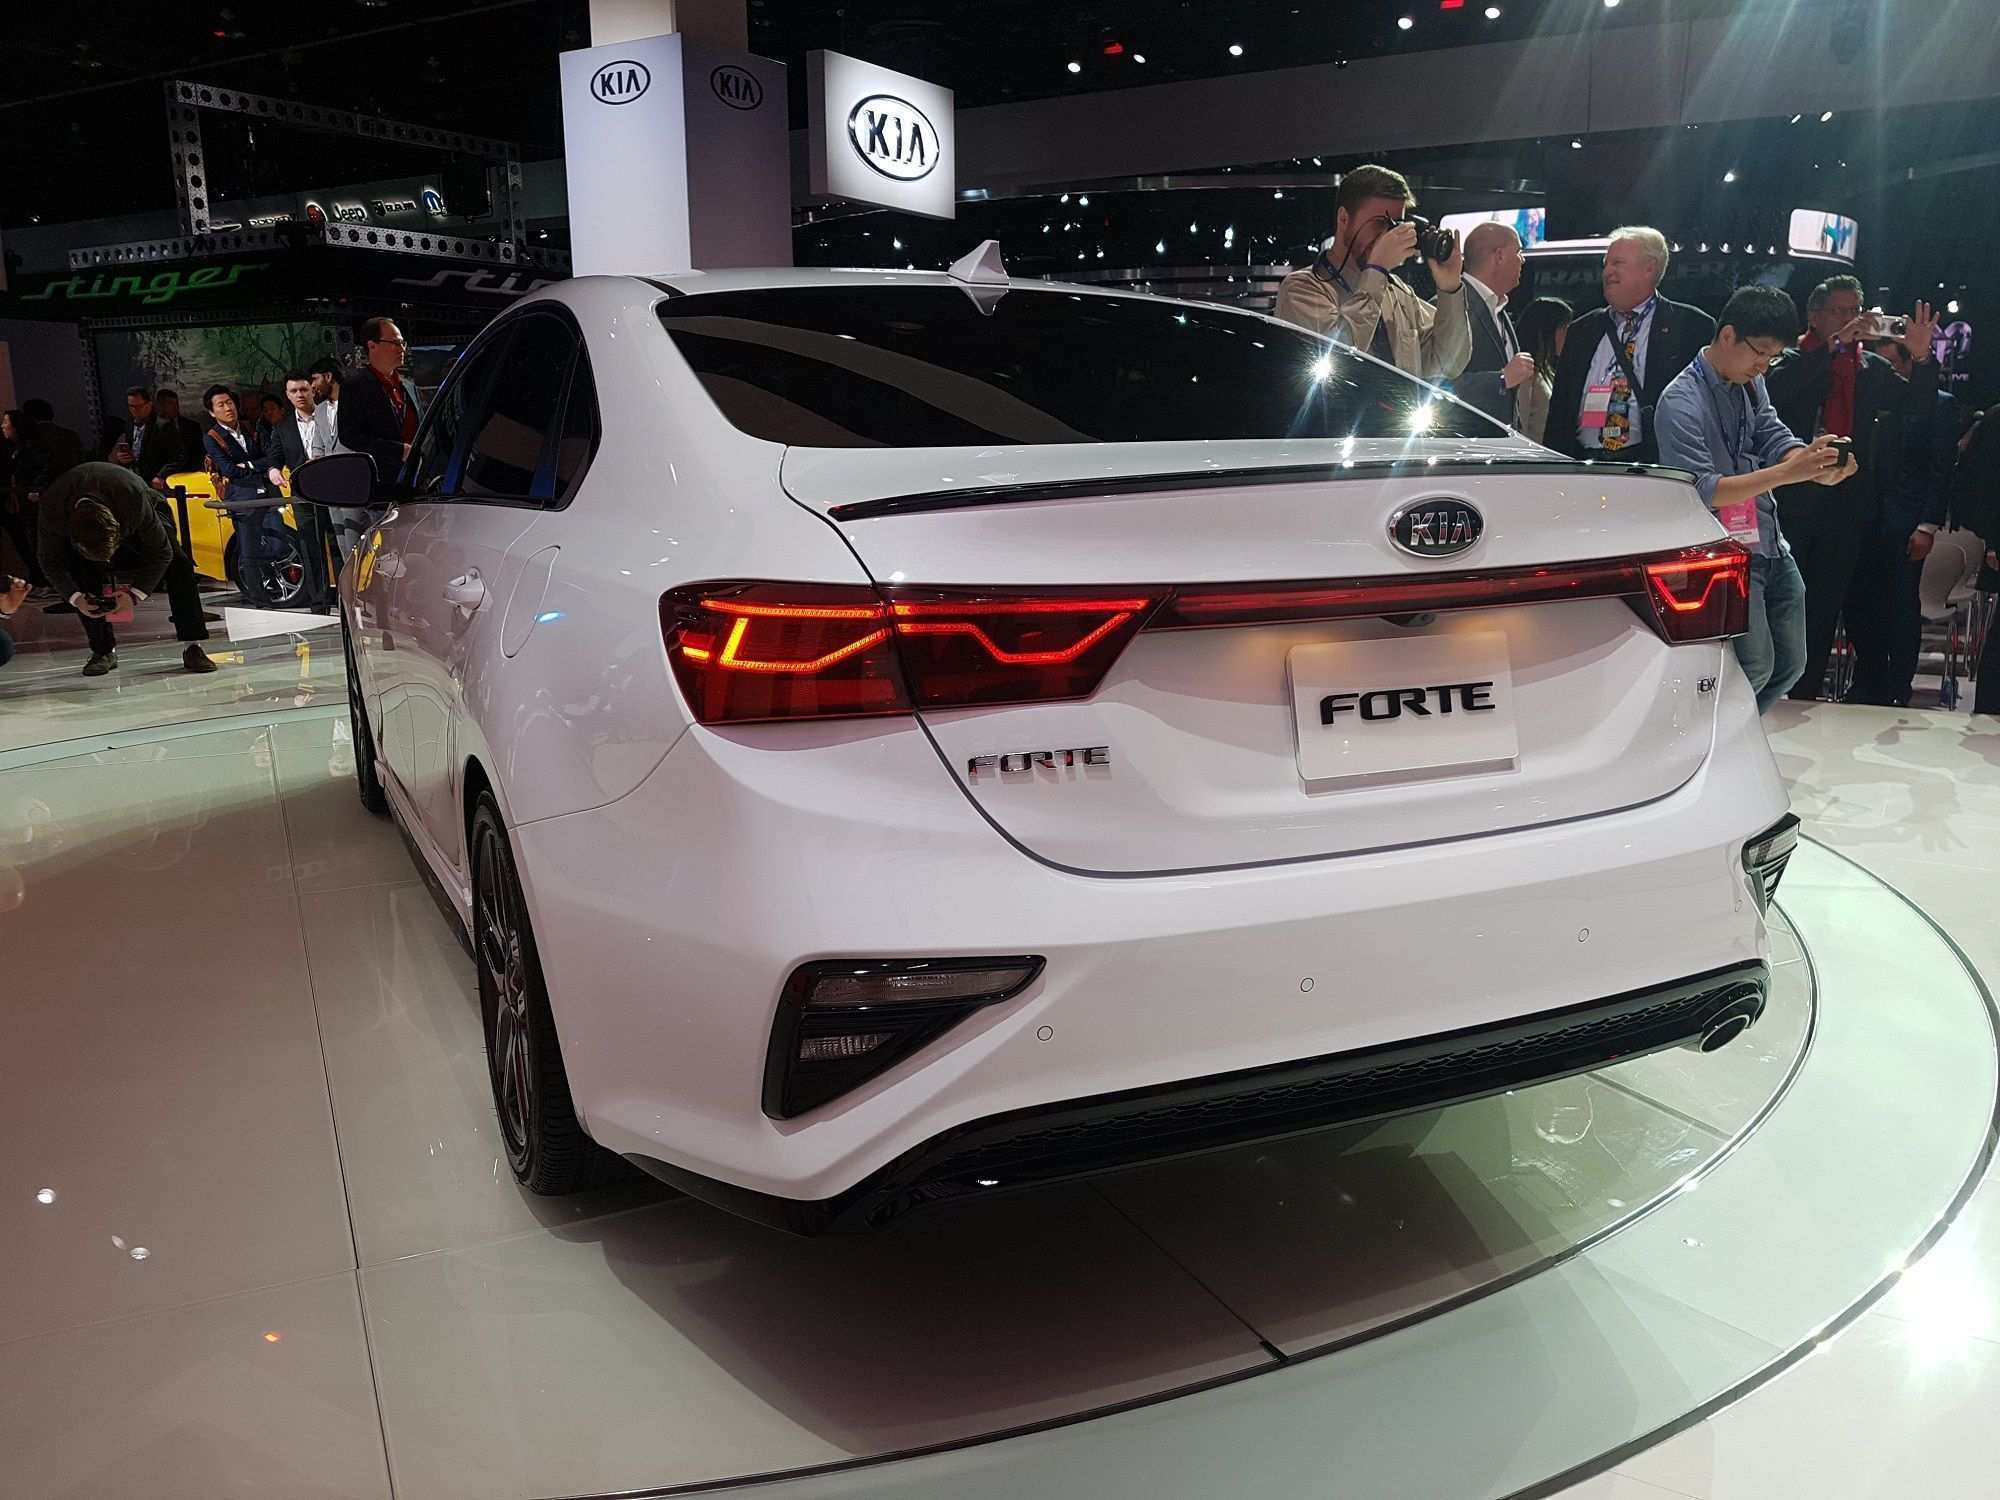 52 New Kia Mexico Forte 2019 Review for Kia Mexico Forte 2019